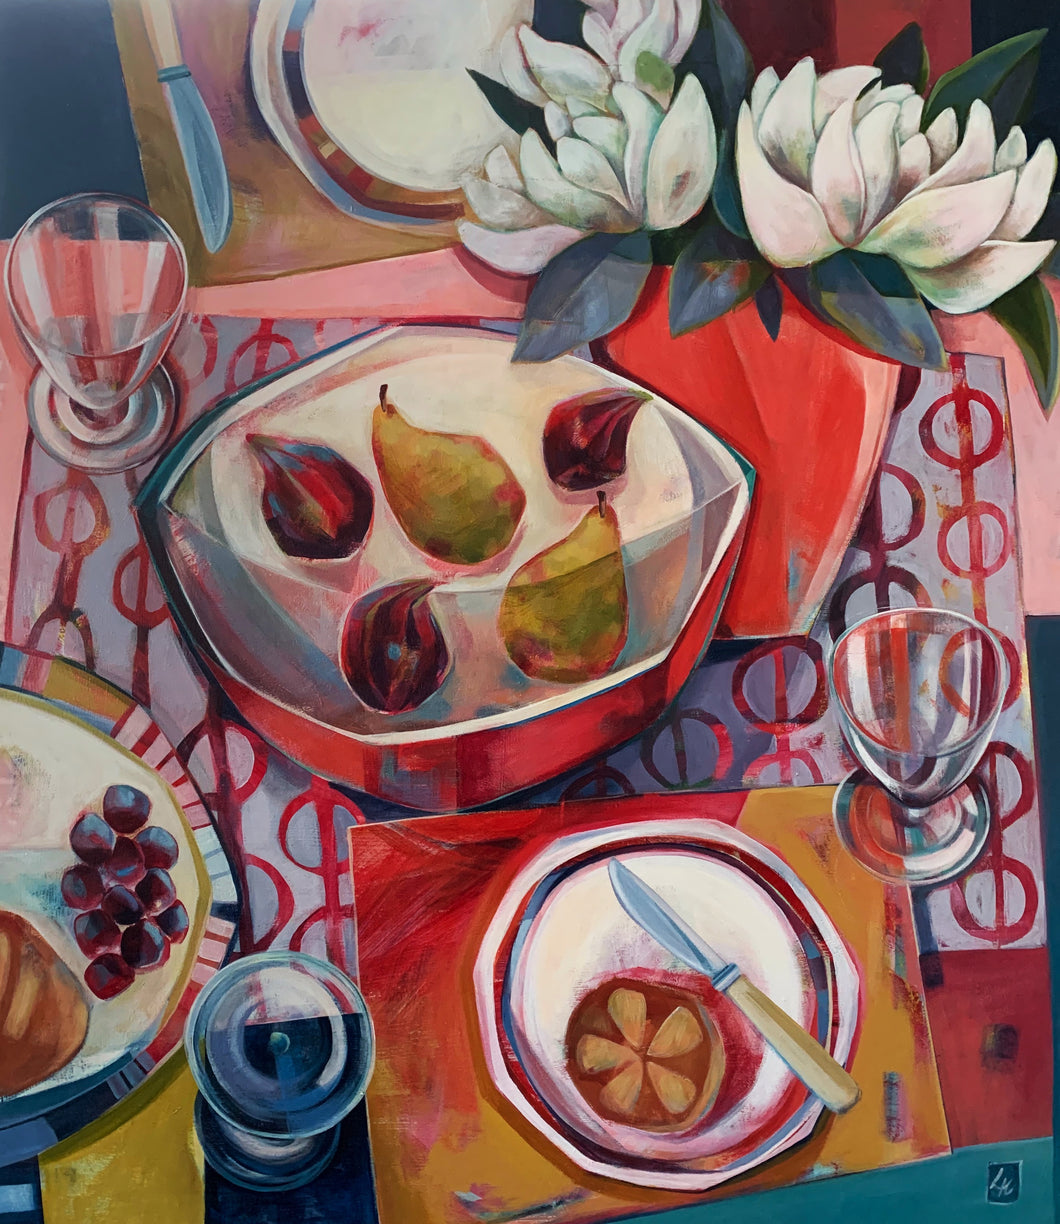 liza kavanagh original painting on board The Carnelian Vase. a contemporary still life in shades of red